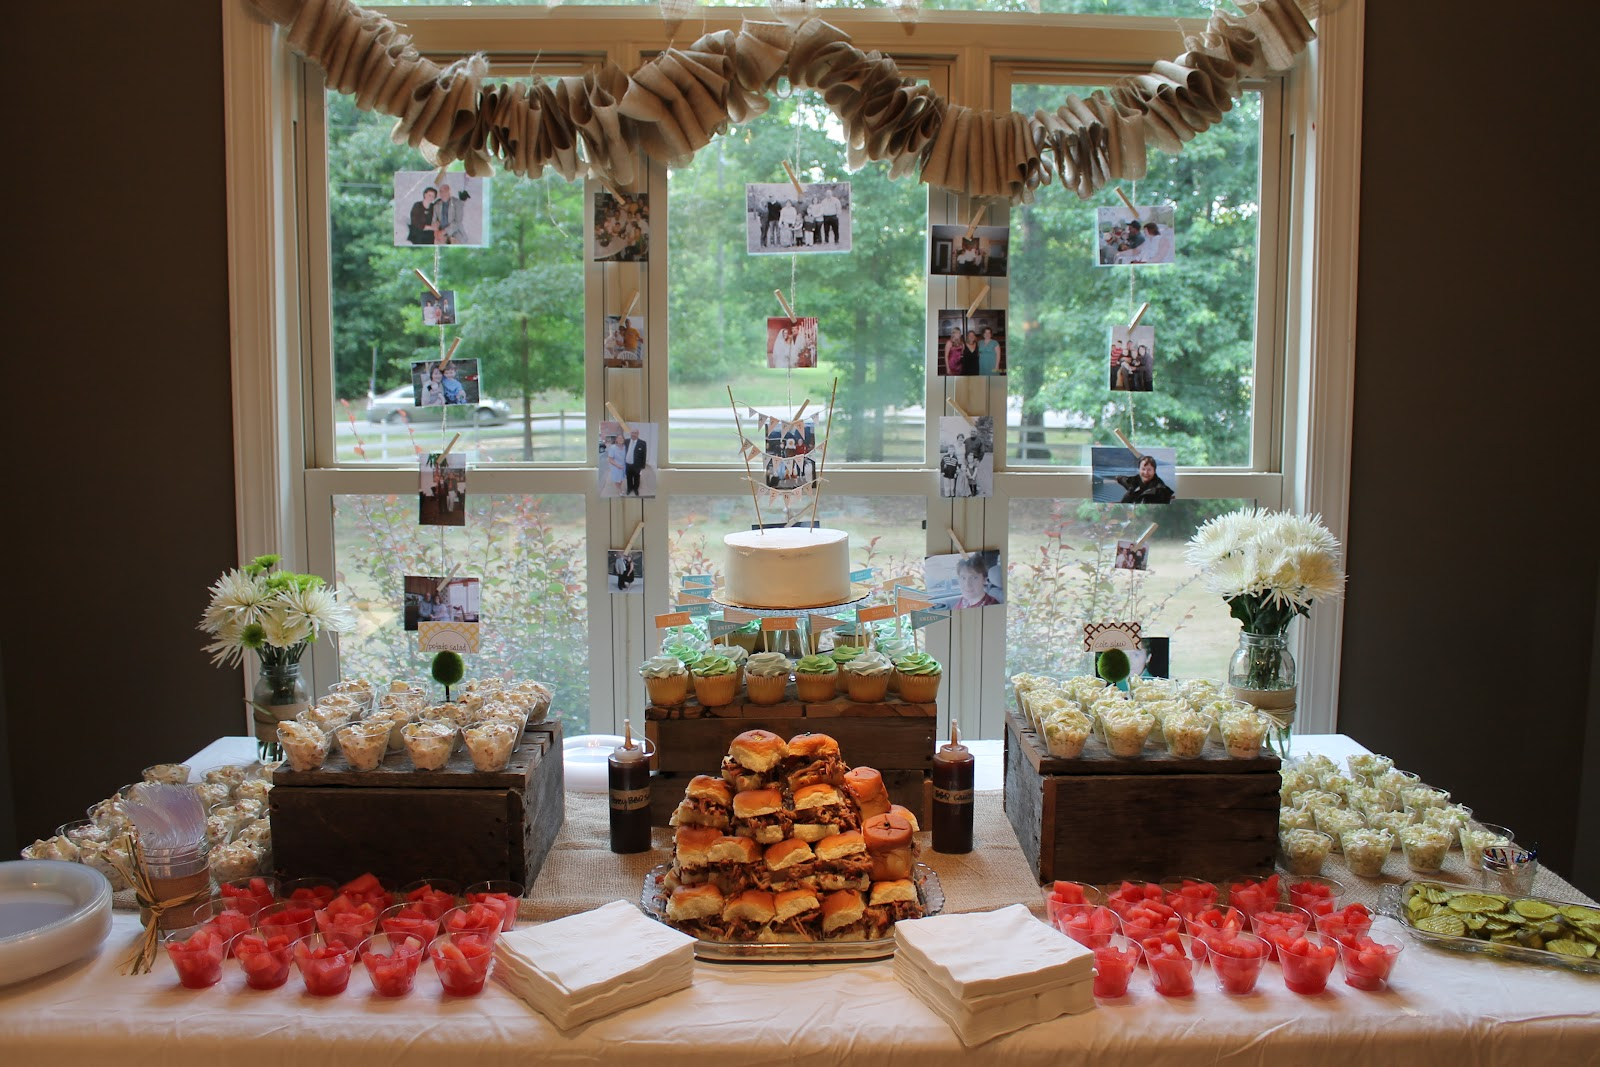 barbeque and burlap a surprise 50th birthday party & barbeque and burlap a surprise 50th birthday party - Life in the ...